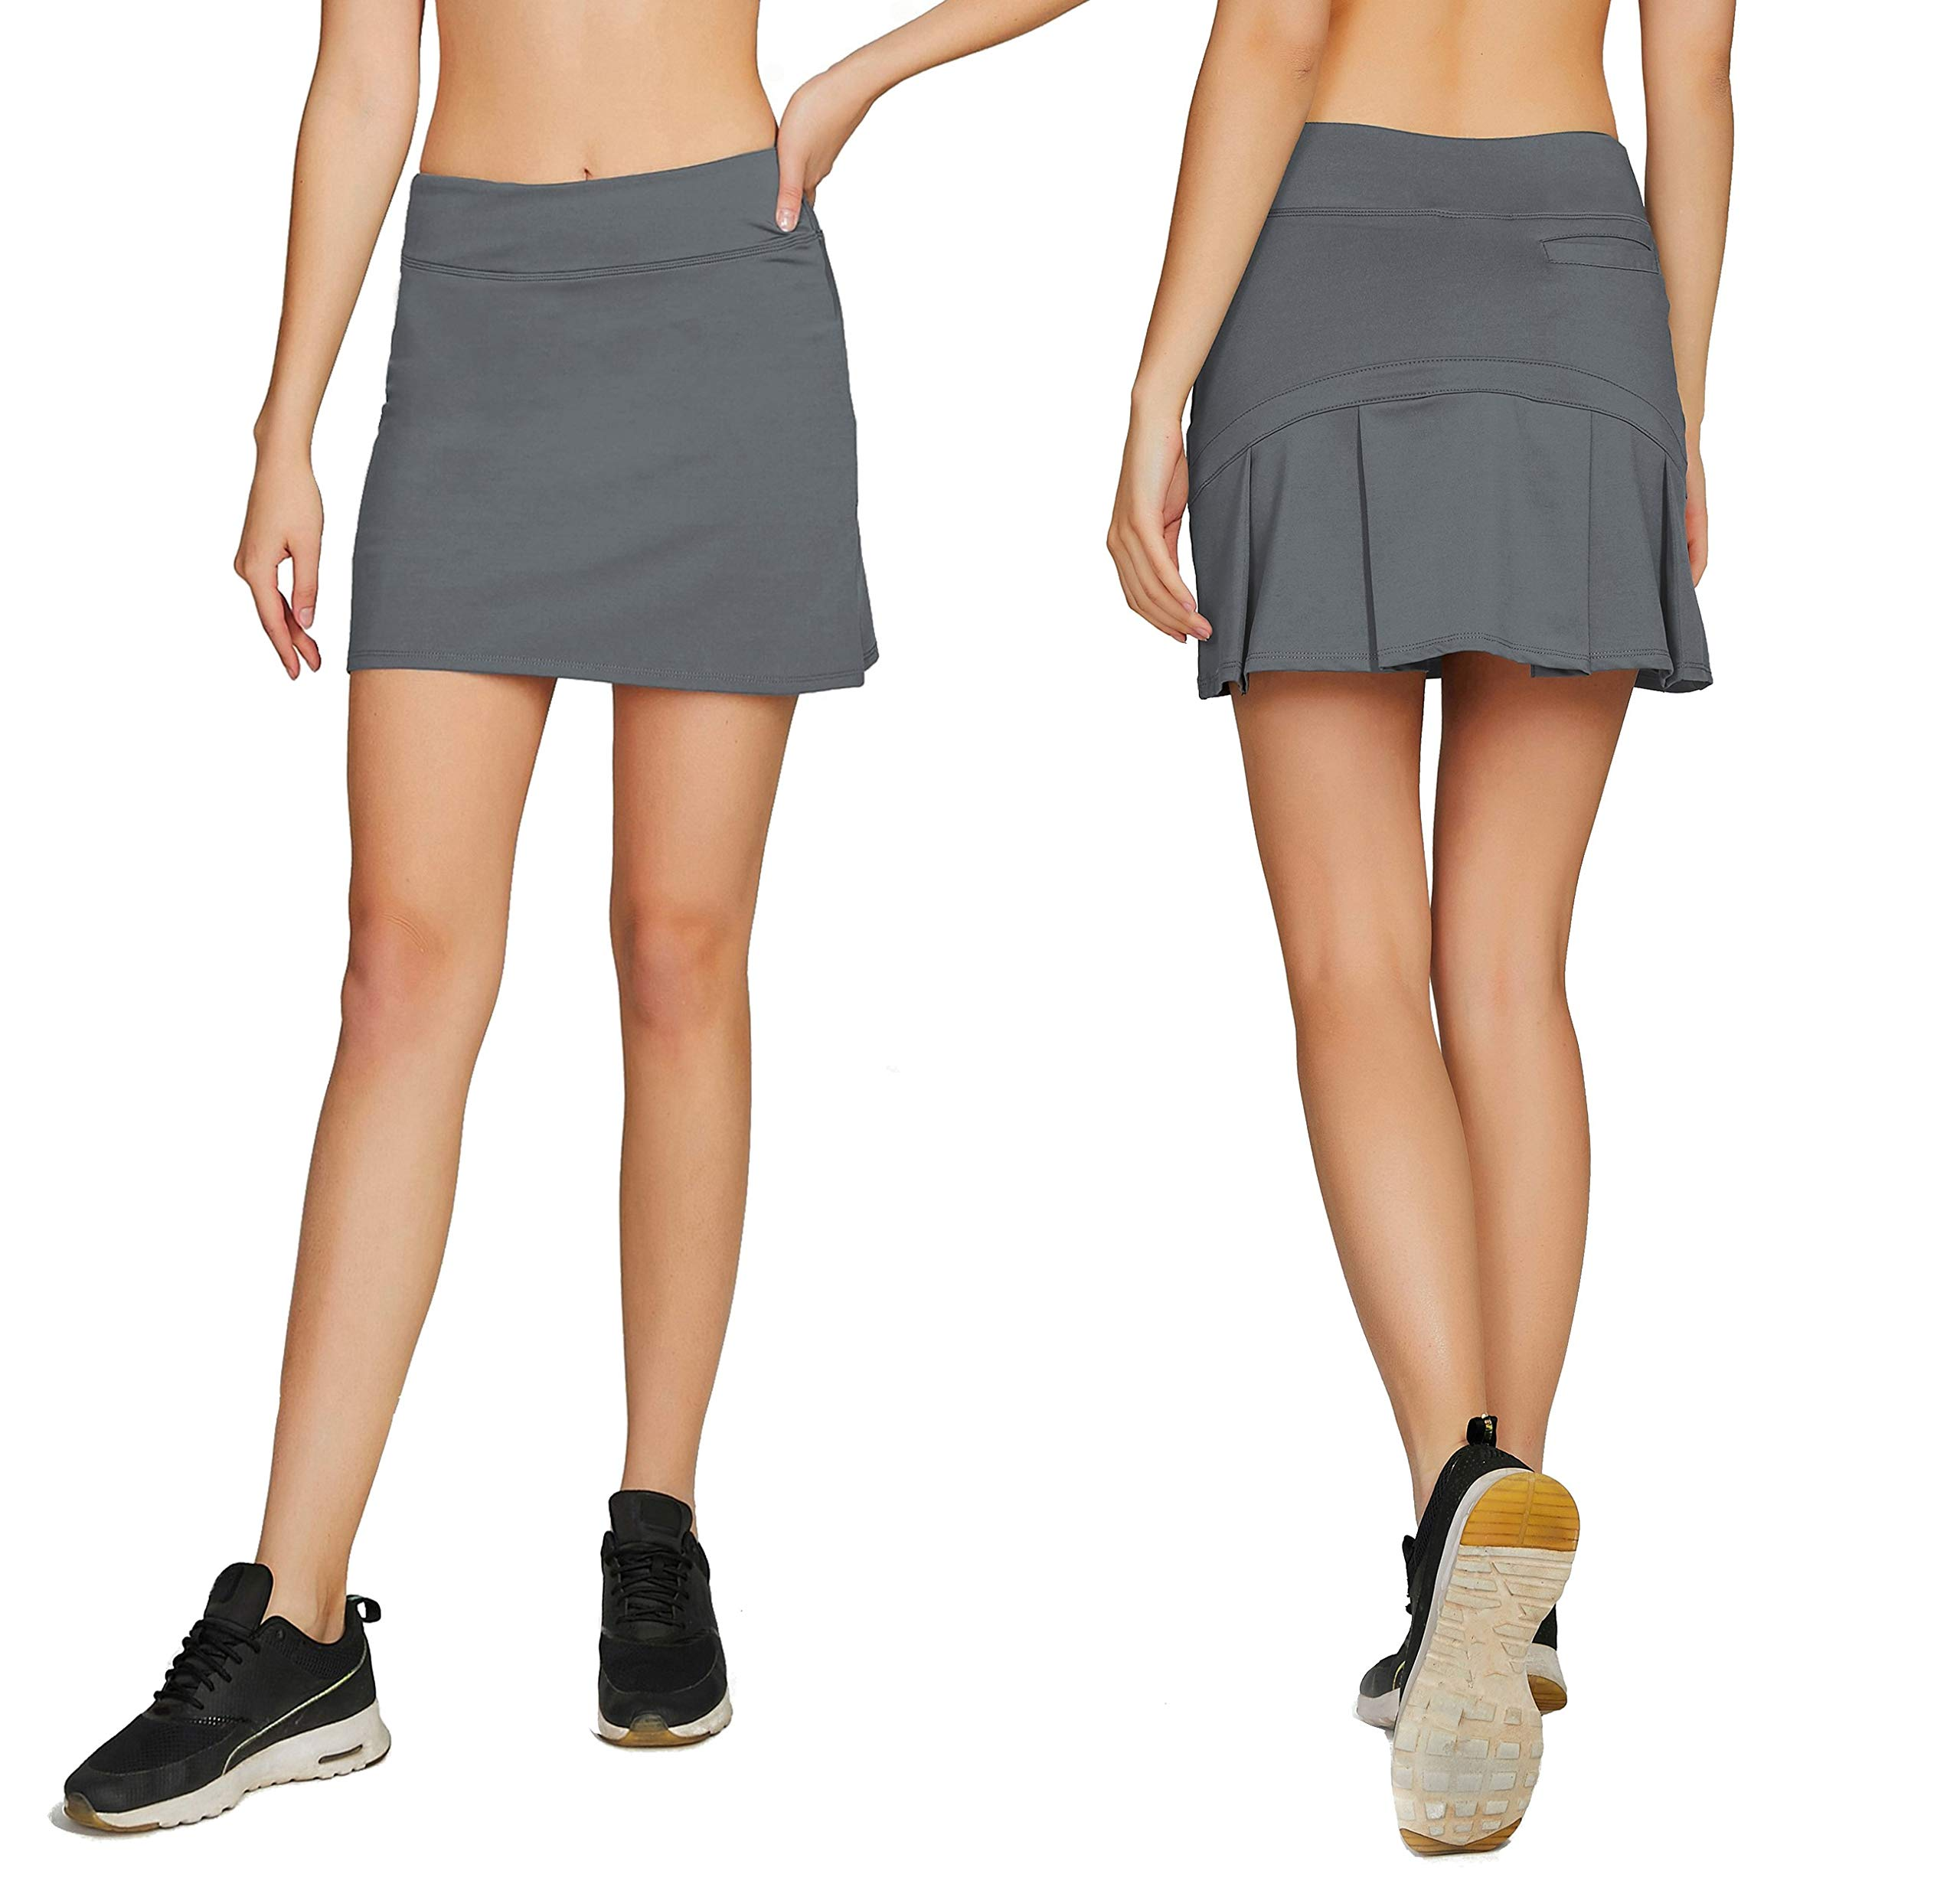 Women's Casual Pleated Tennis Golf Skirt with Underneath Shorts Running Skorts gy xs